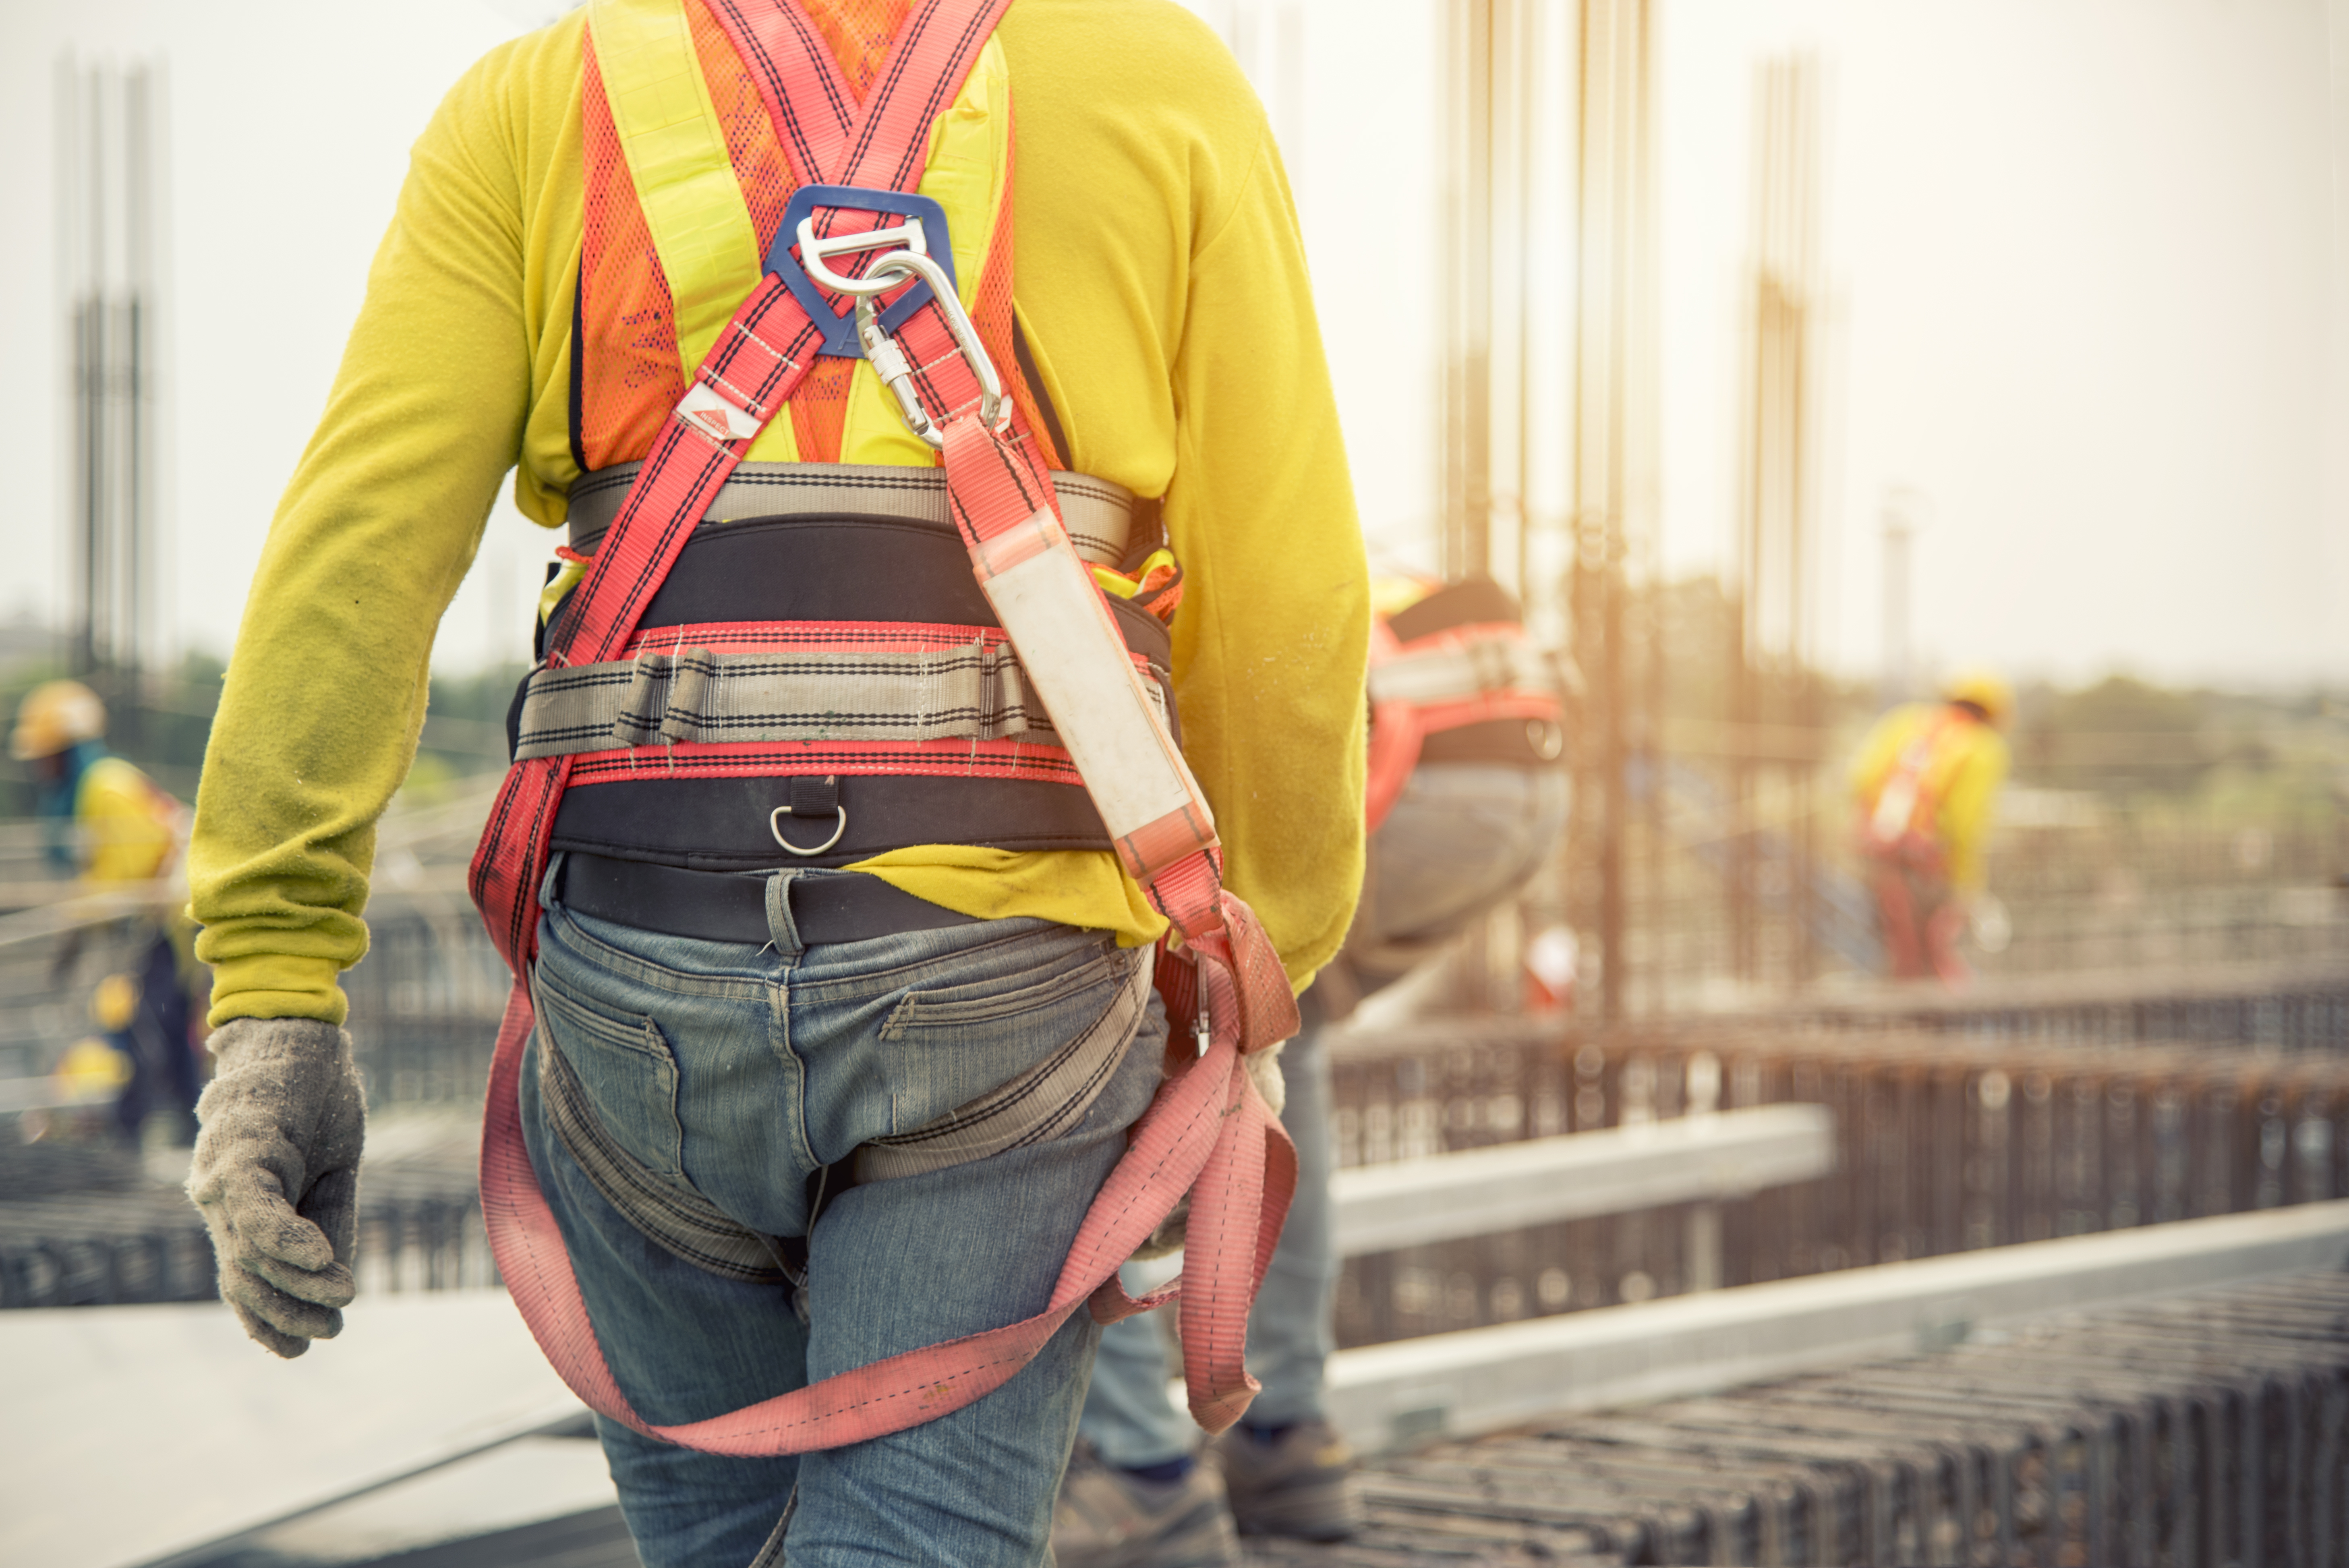 Tristan Meears-White: Working at Height and the Law – Is it time for an update?